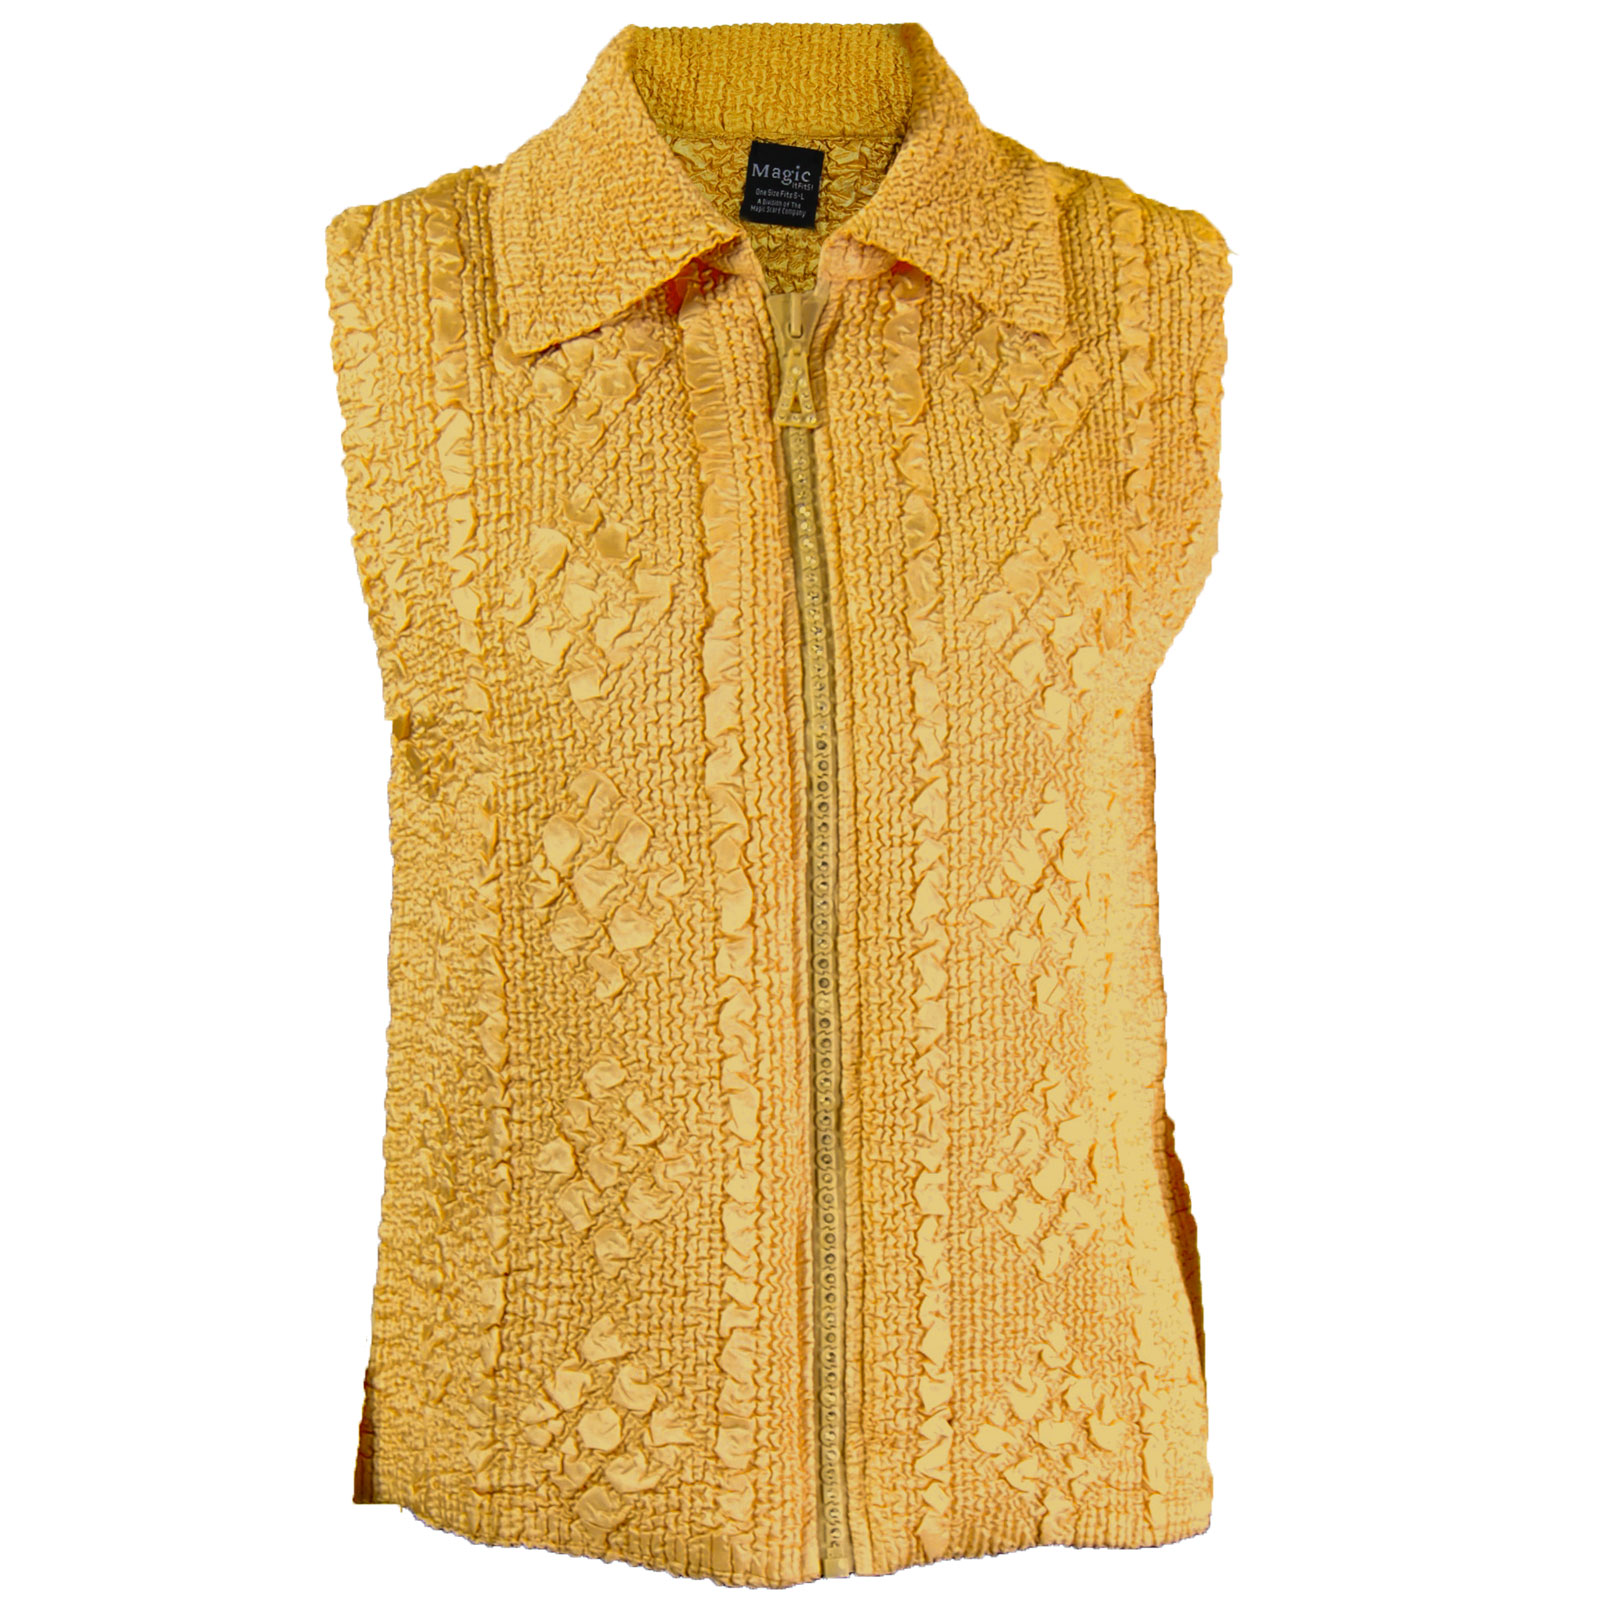 Overstock and Clearance Tops - Diamond Zipper Vest - Gold